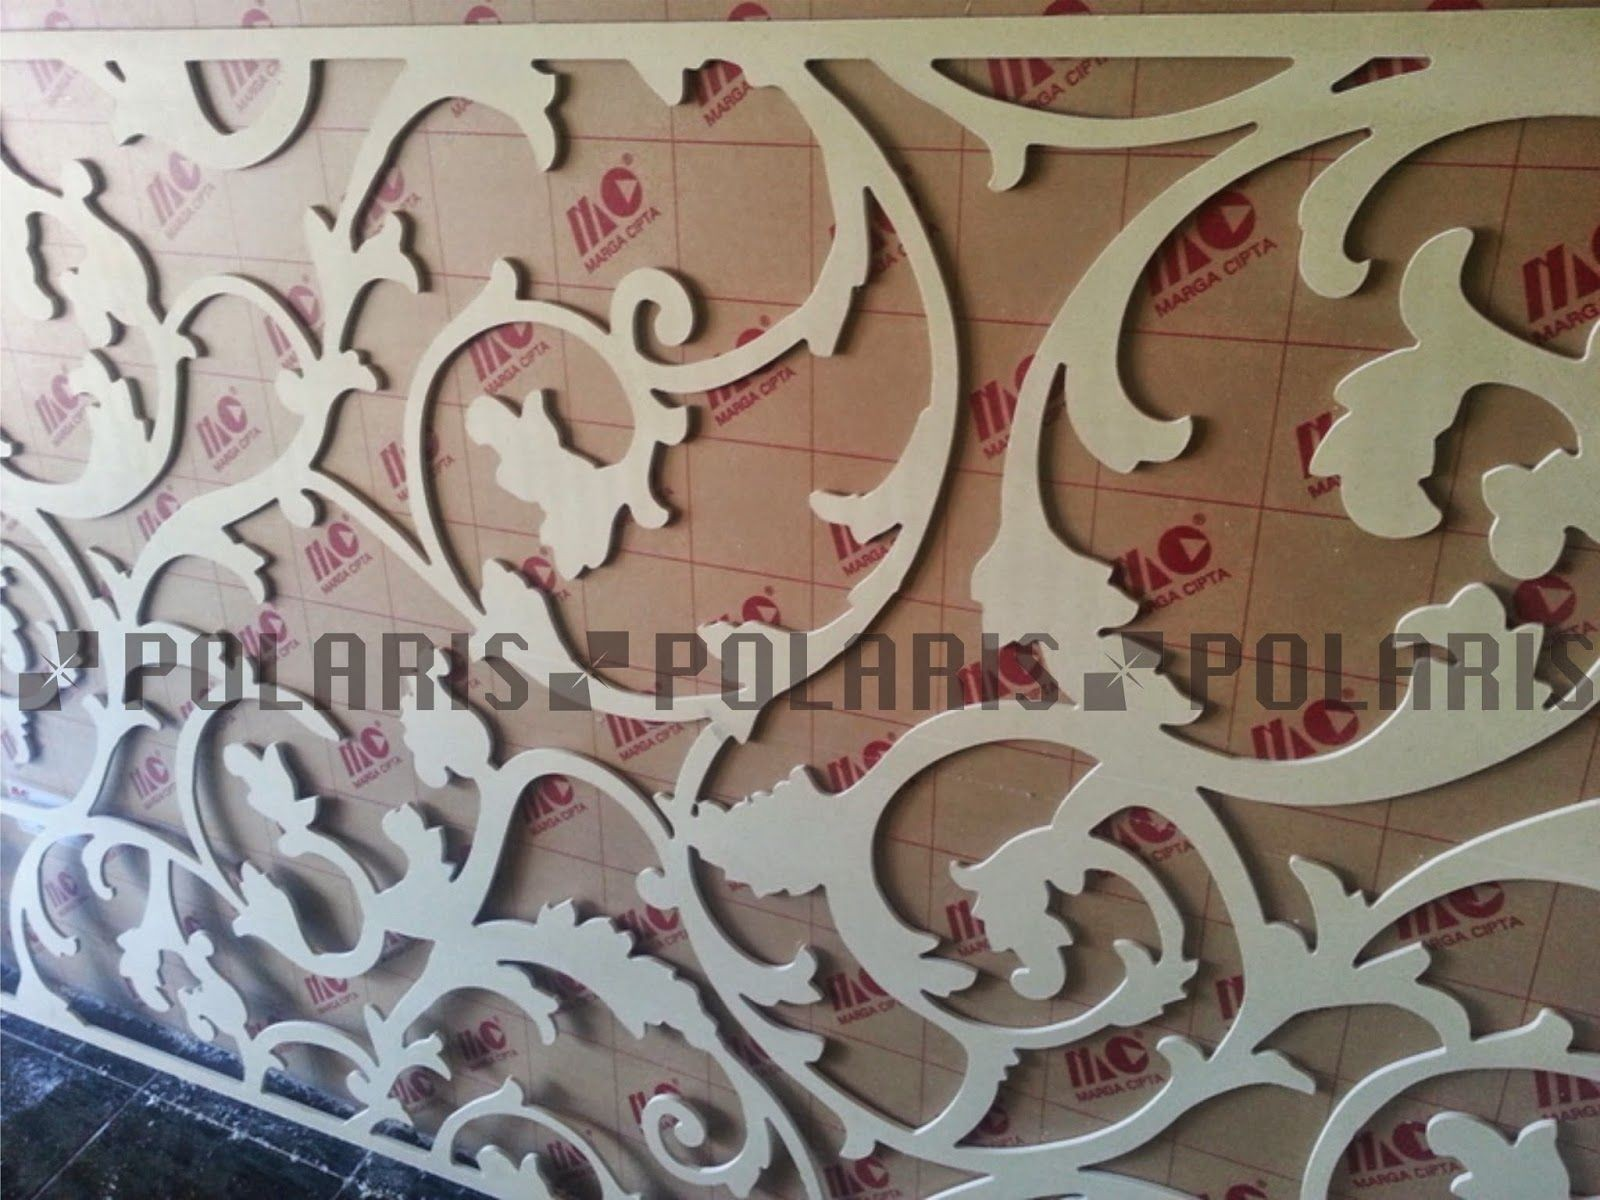 Download Wallpaper Dinding Kayu Terbaru Untuk Polaris Laser Cutting Dan Cnc Surabaya Interior Panel Plywood Of Download Wallpaper Dinding Kayu Terbaik Untuk Wood Desktop Background Wallpapersafari